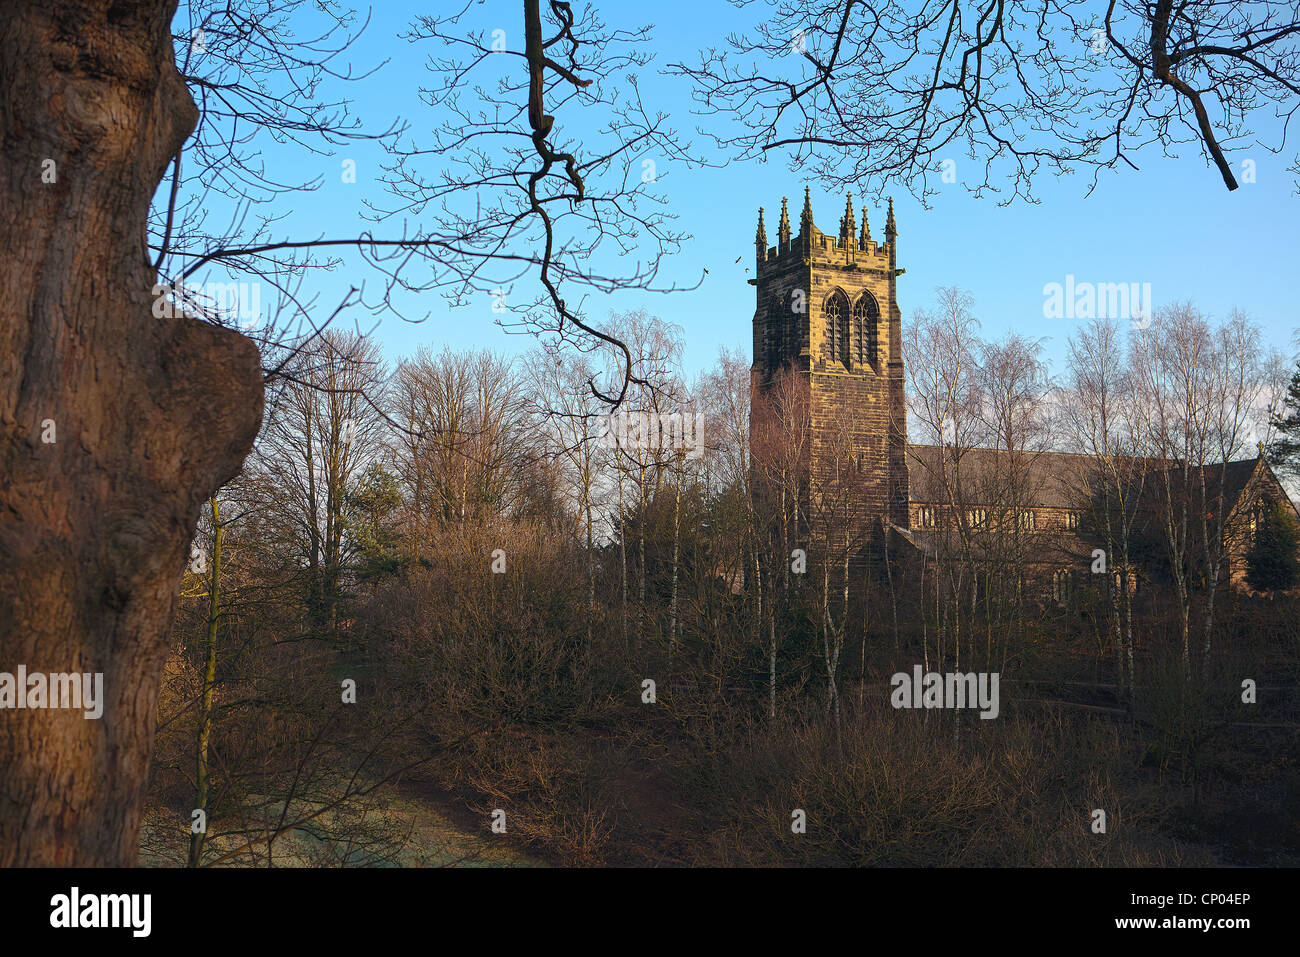 St Mary's Church from Lymm Dam, Lymm, Cheshire, England Stock Photo